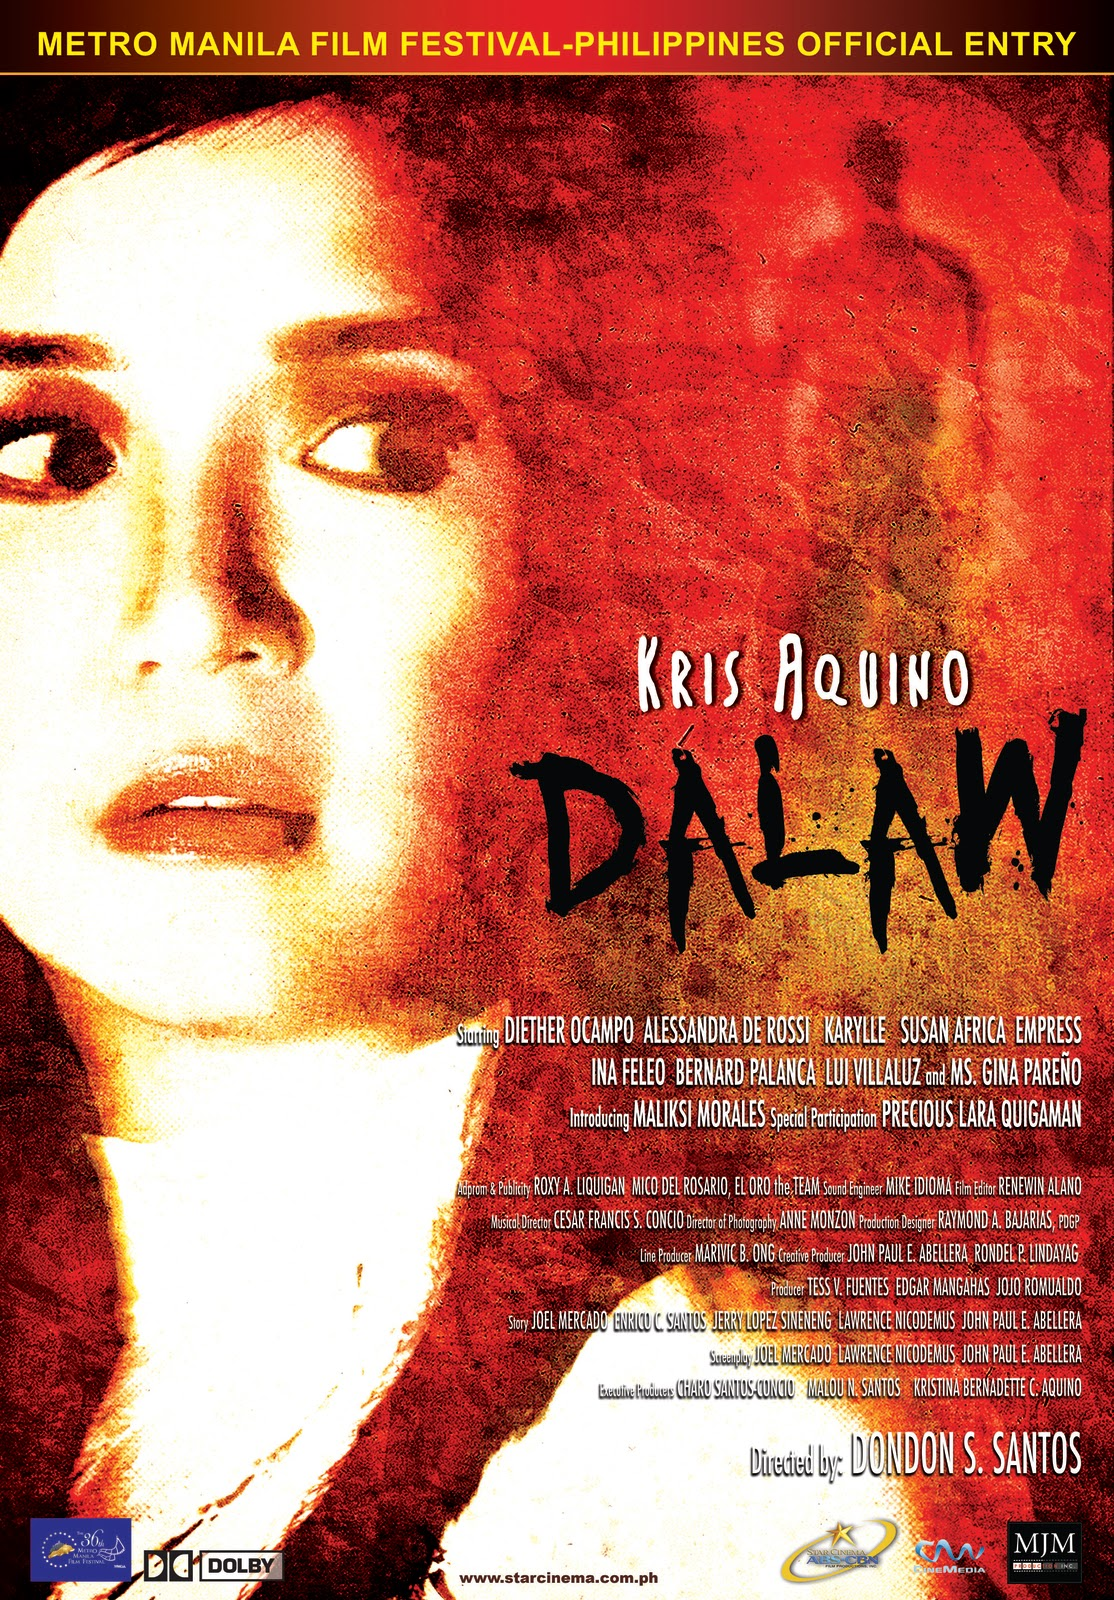 watch Dalaw - Kris Aquino pinoy movie online streaming best pinoy horror movies